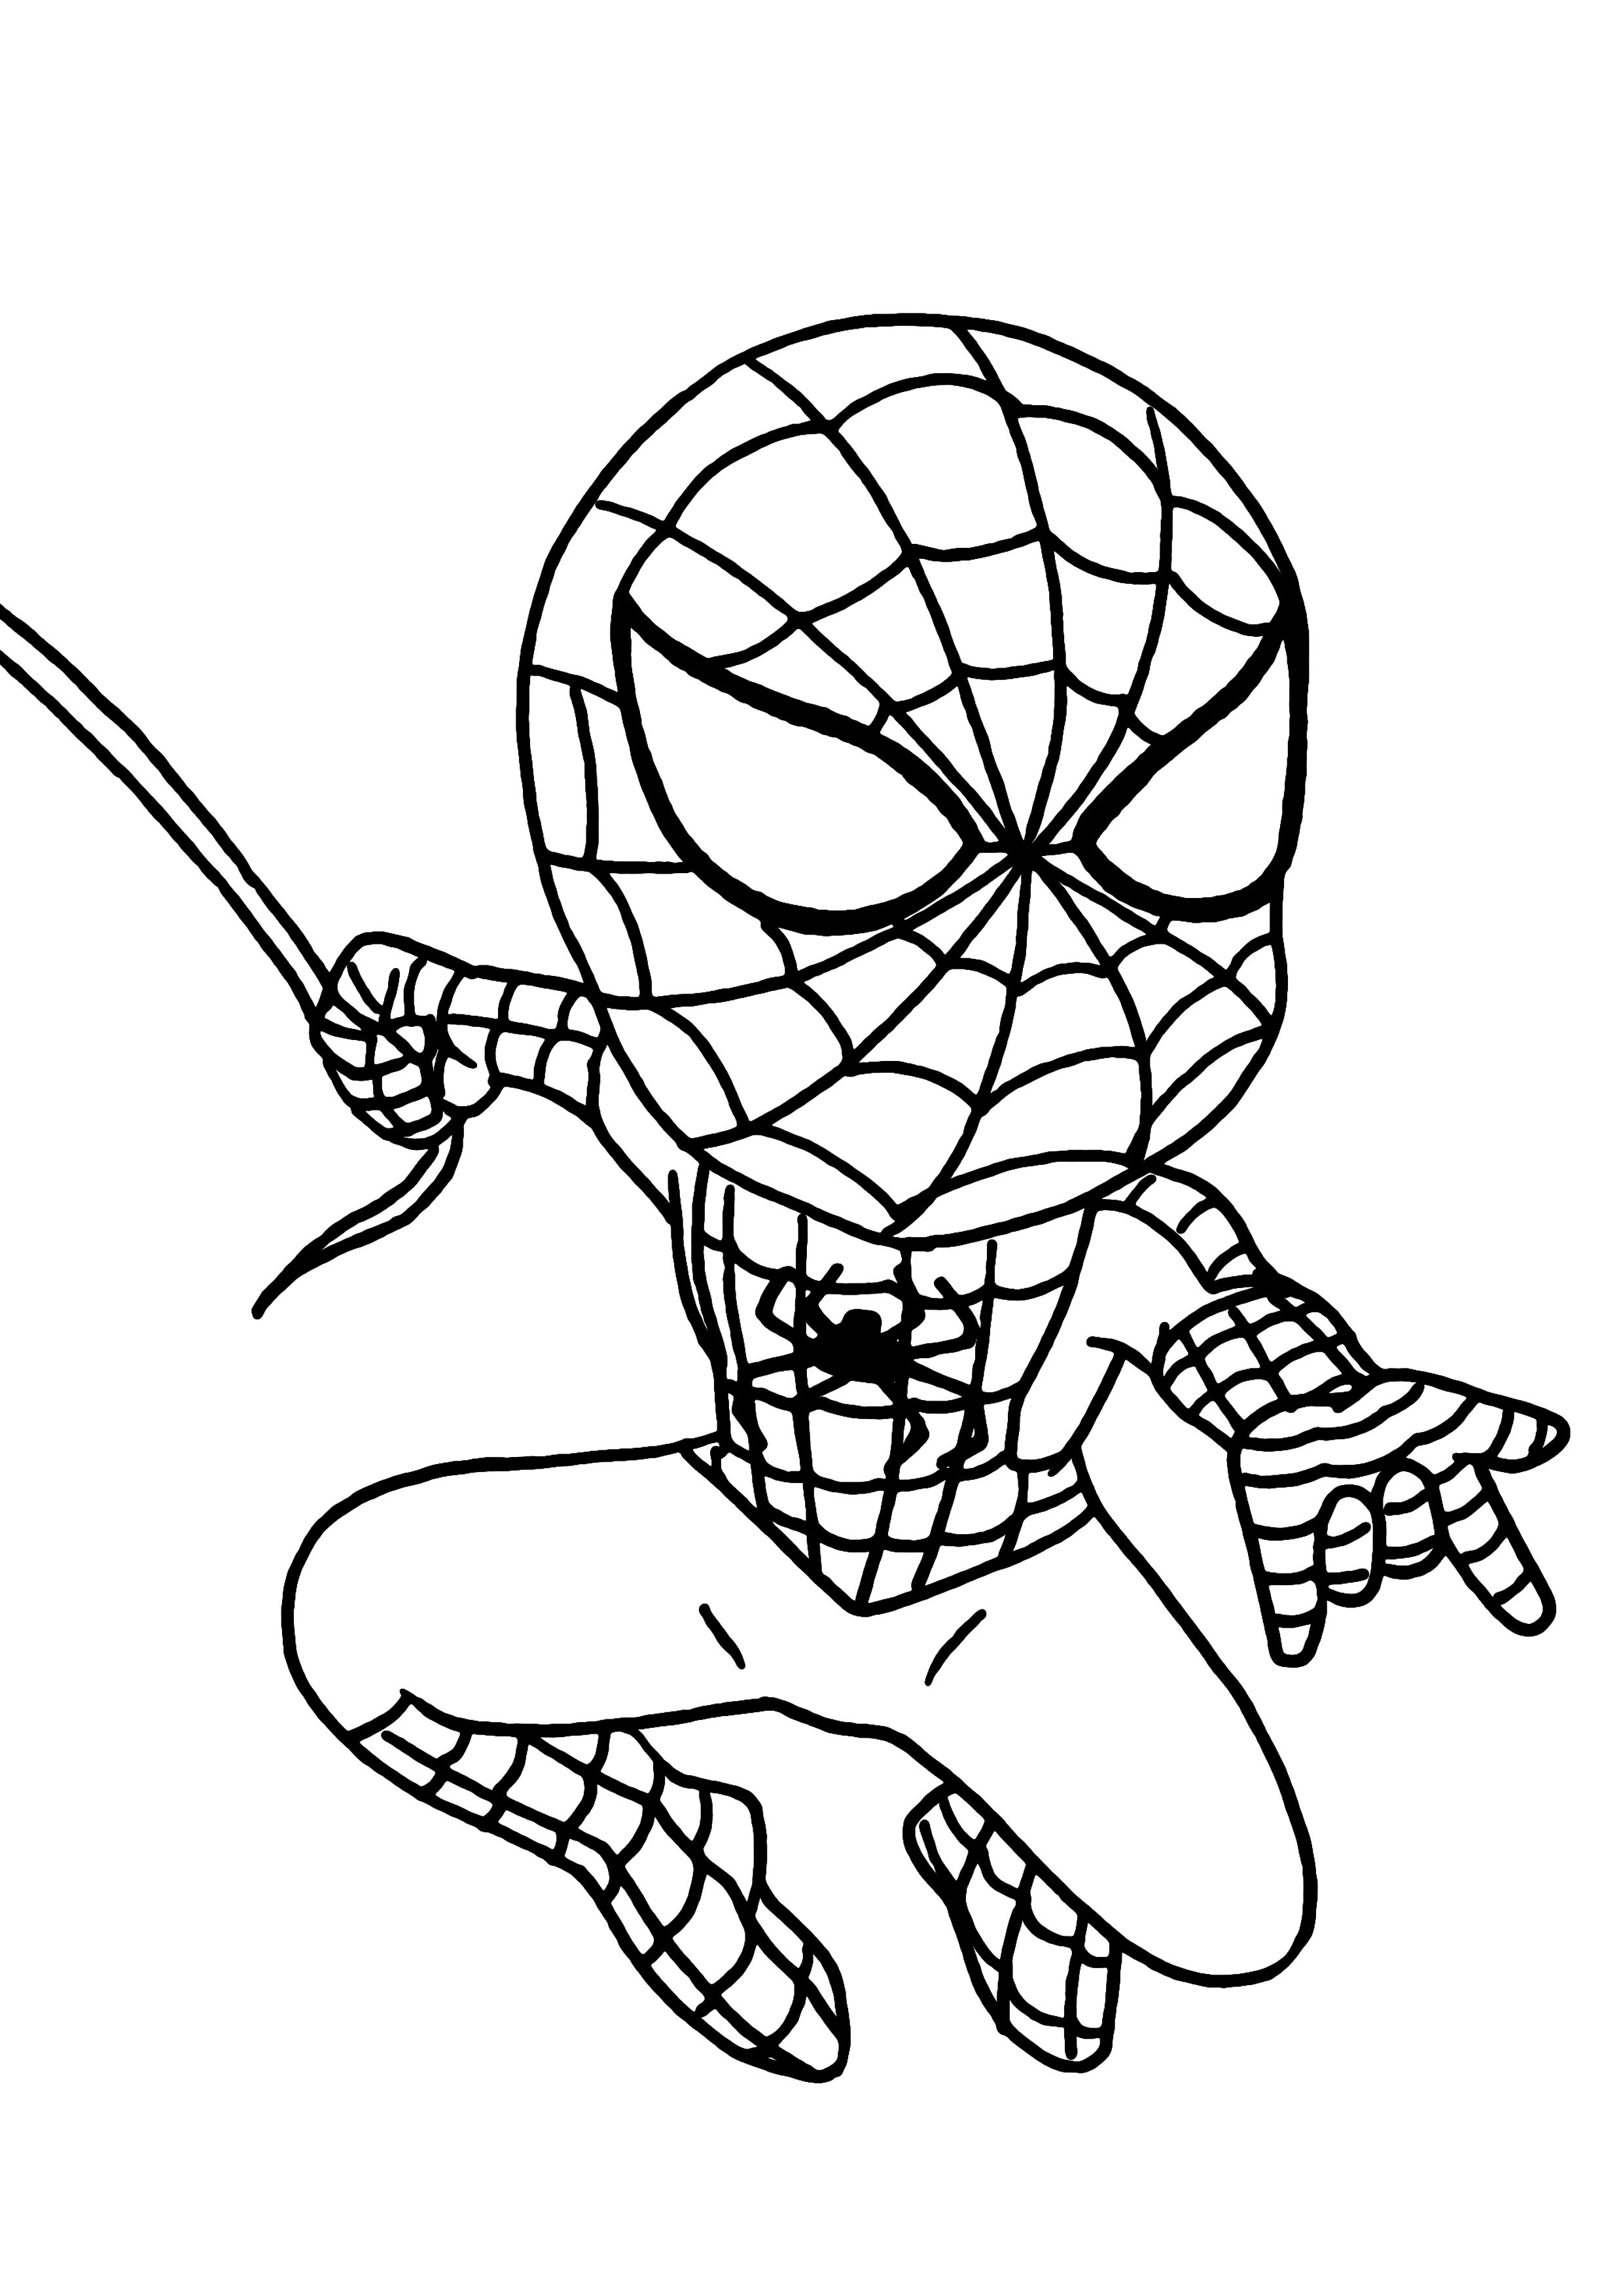 171 Dessins De Coloriage Super Heros A Imprimer Sur Laguerche Pertaining To Coloriage Spiderman Super Hero Coloriage Spiderman Coloriage Super Heros Coloriage